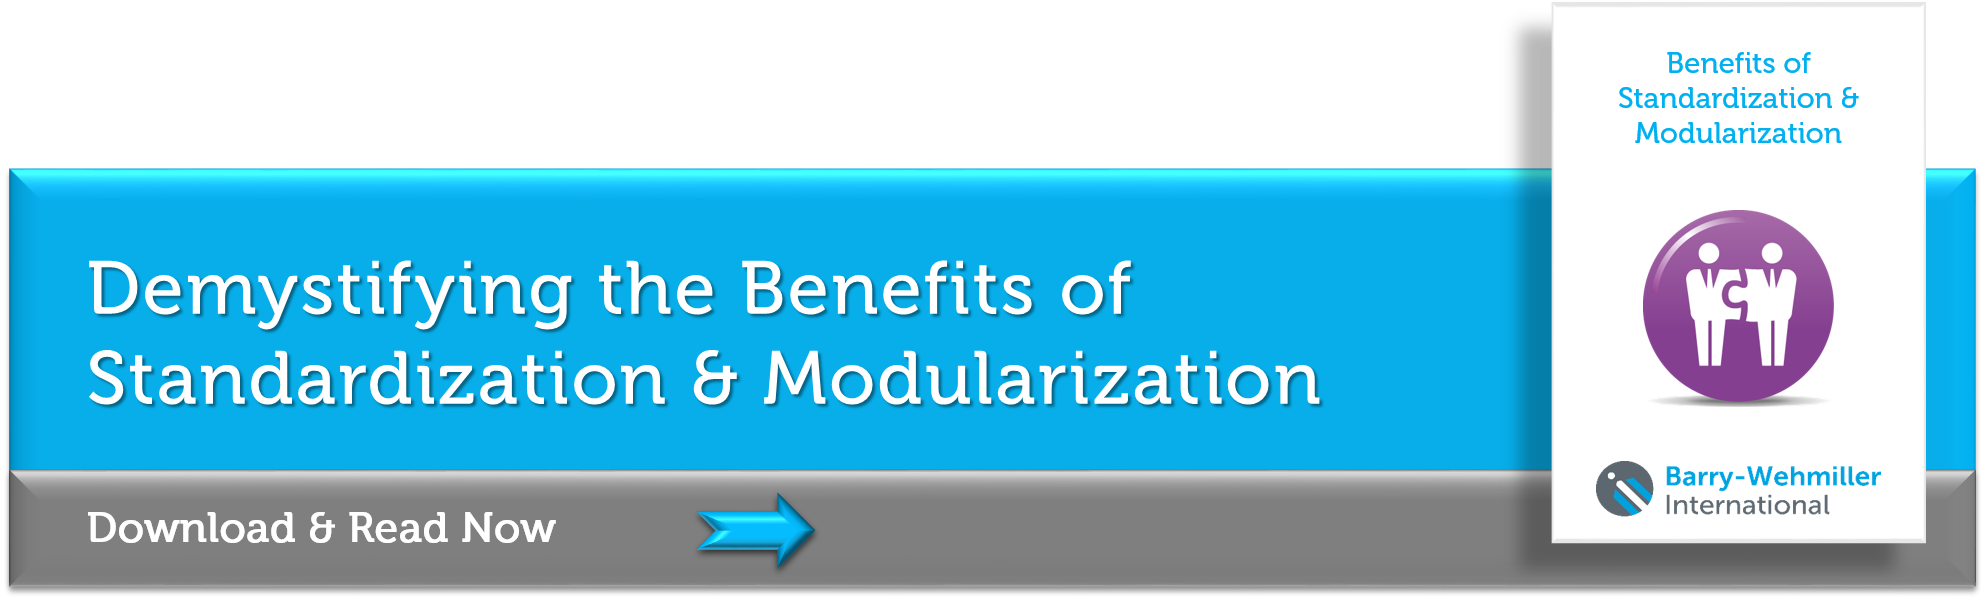 Benefits of Standardization & Modularization